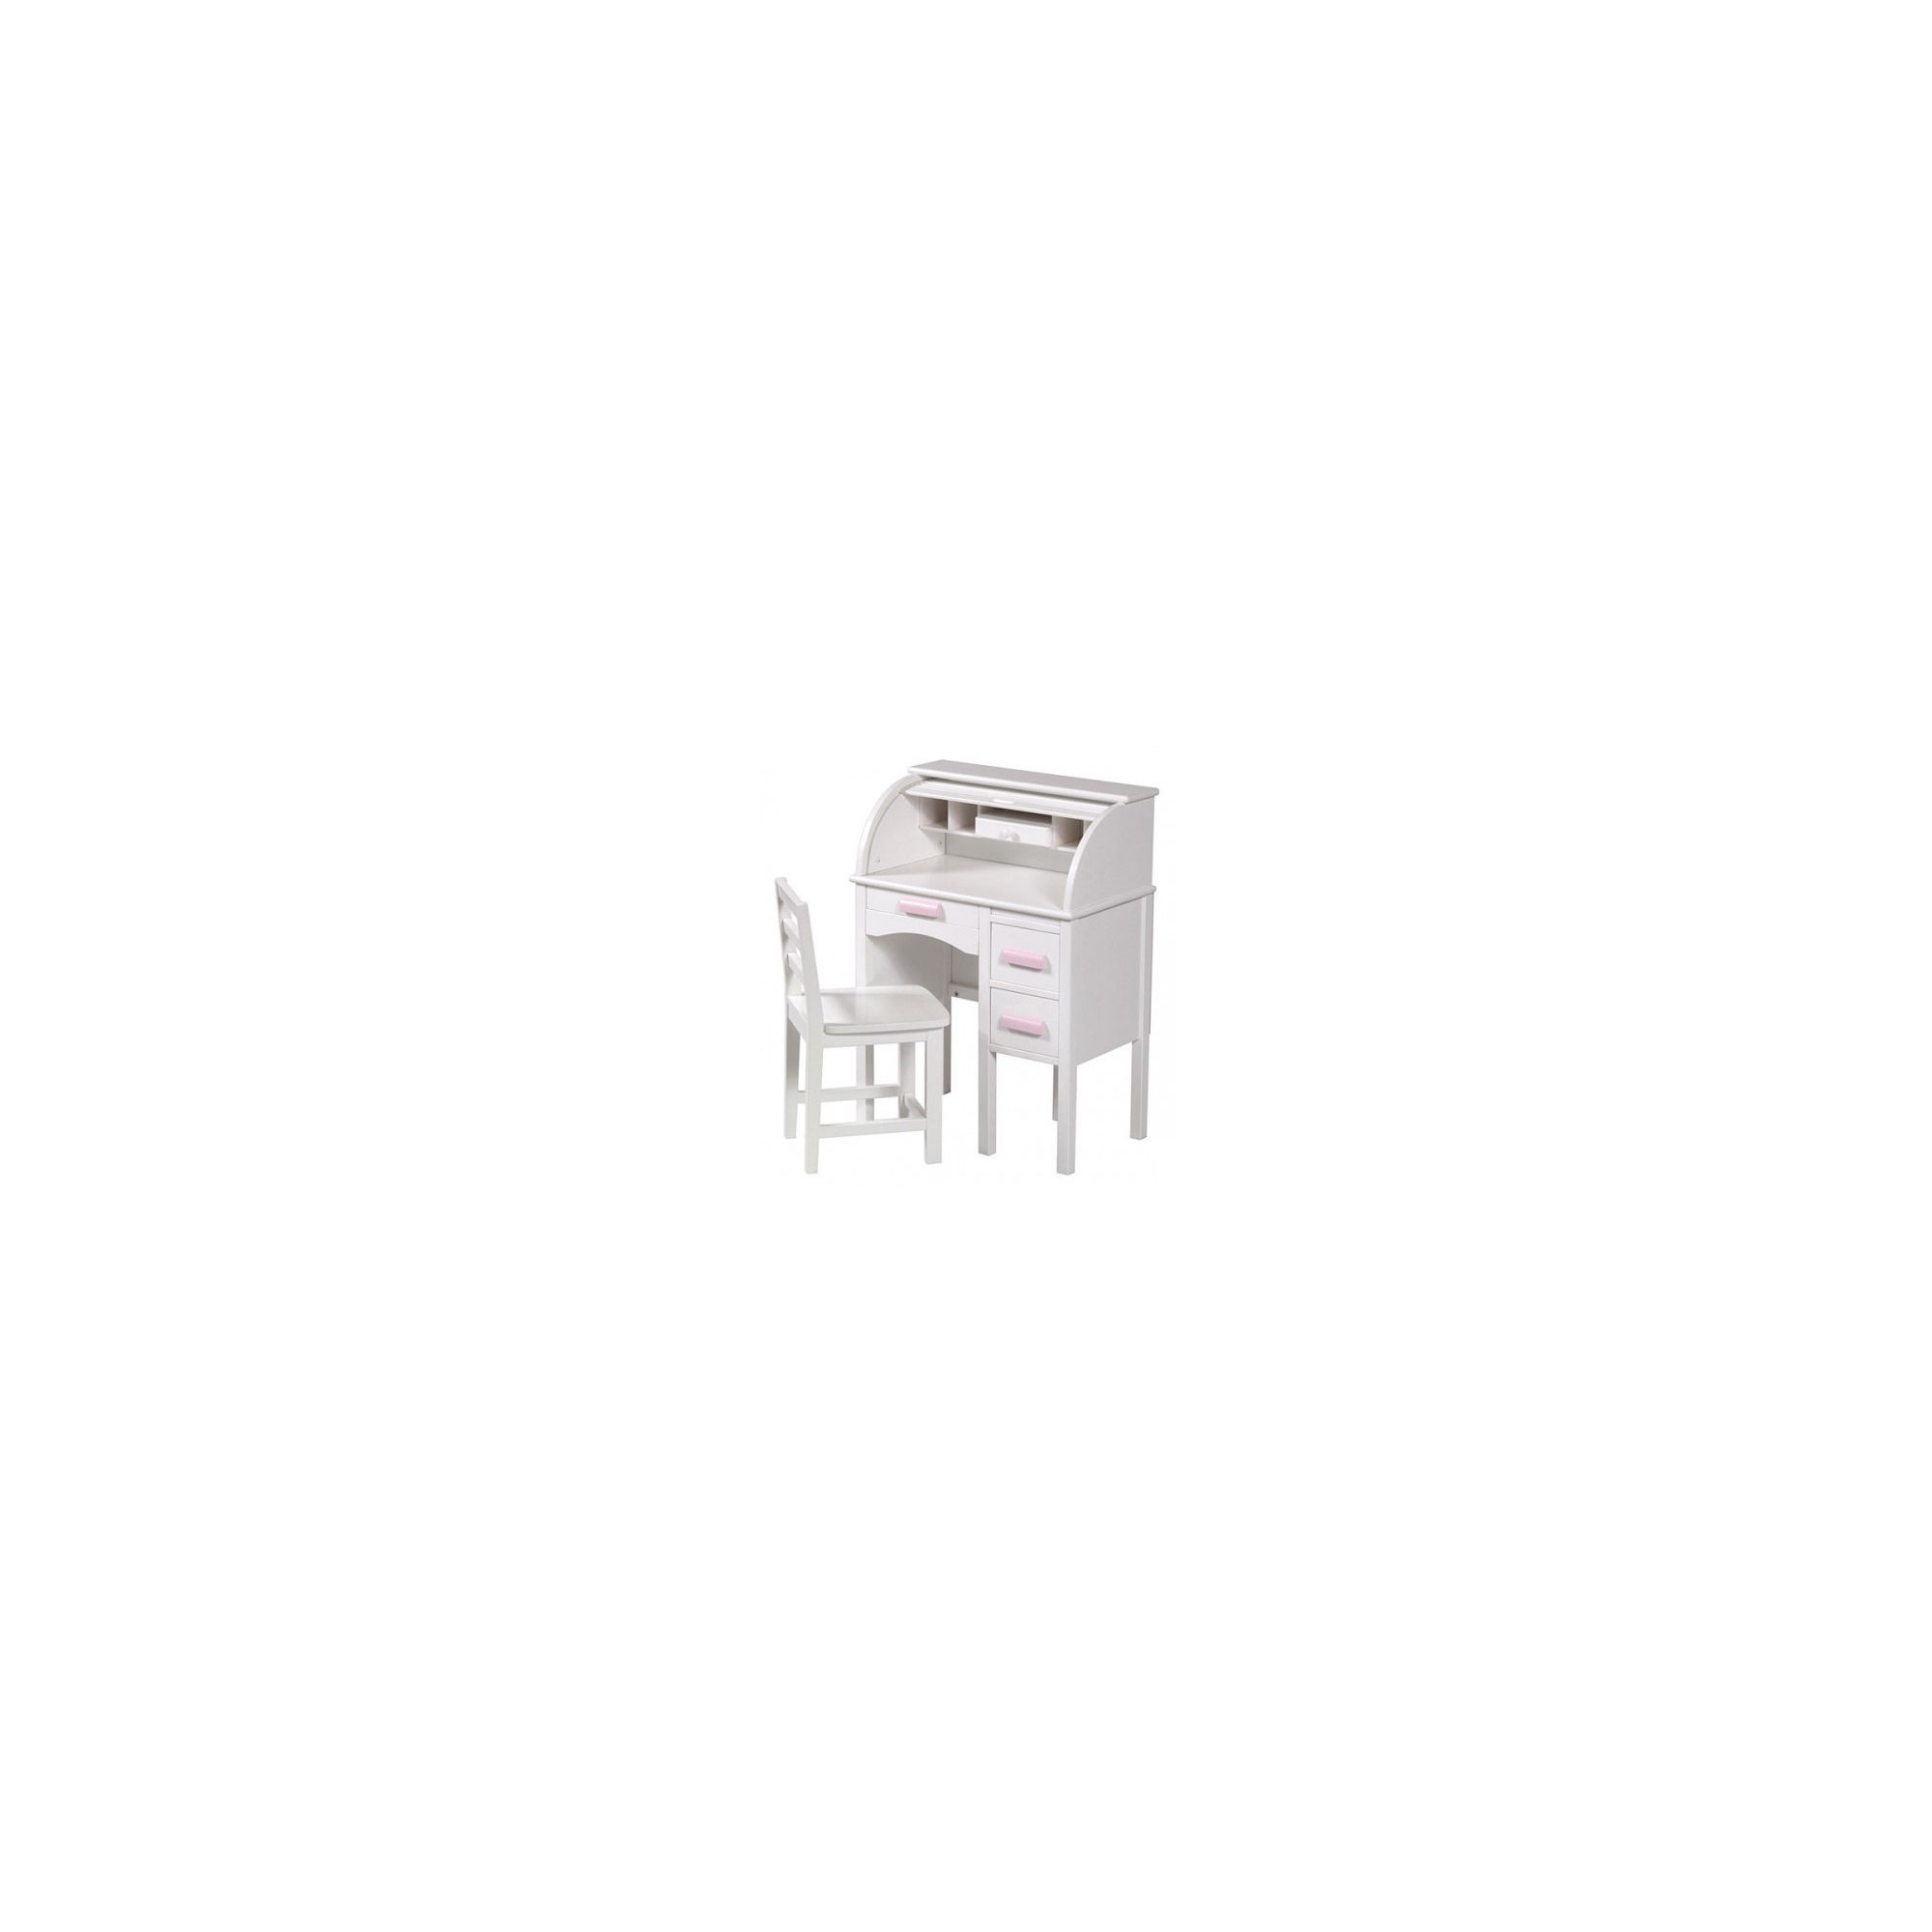 Guidecraft Jr. Roll - Top Desk Set in White at Tesco Direct